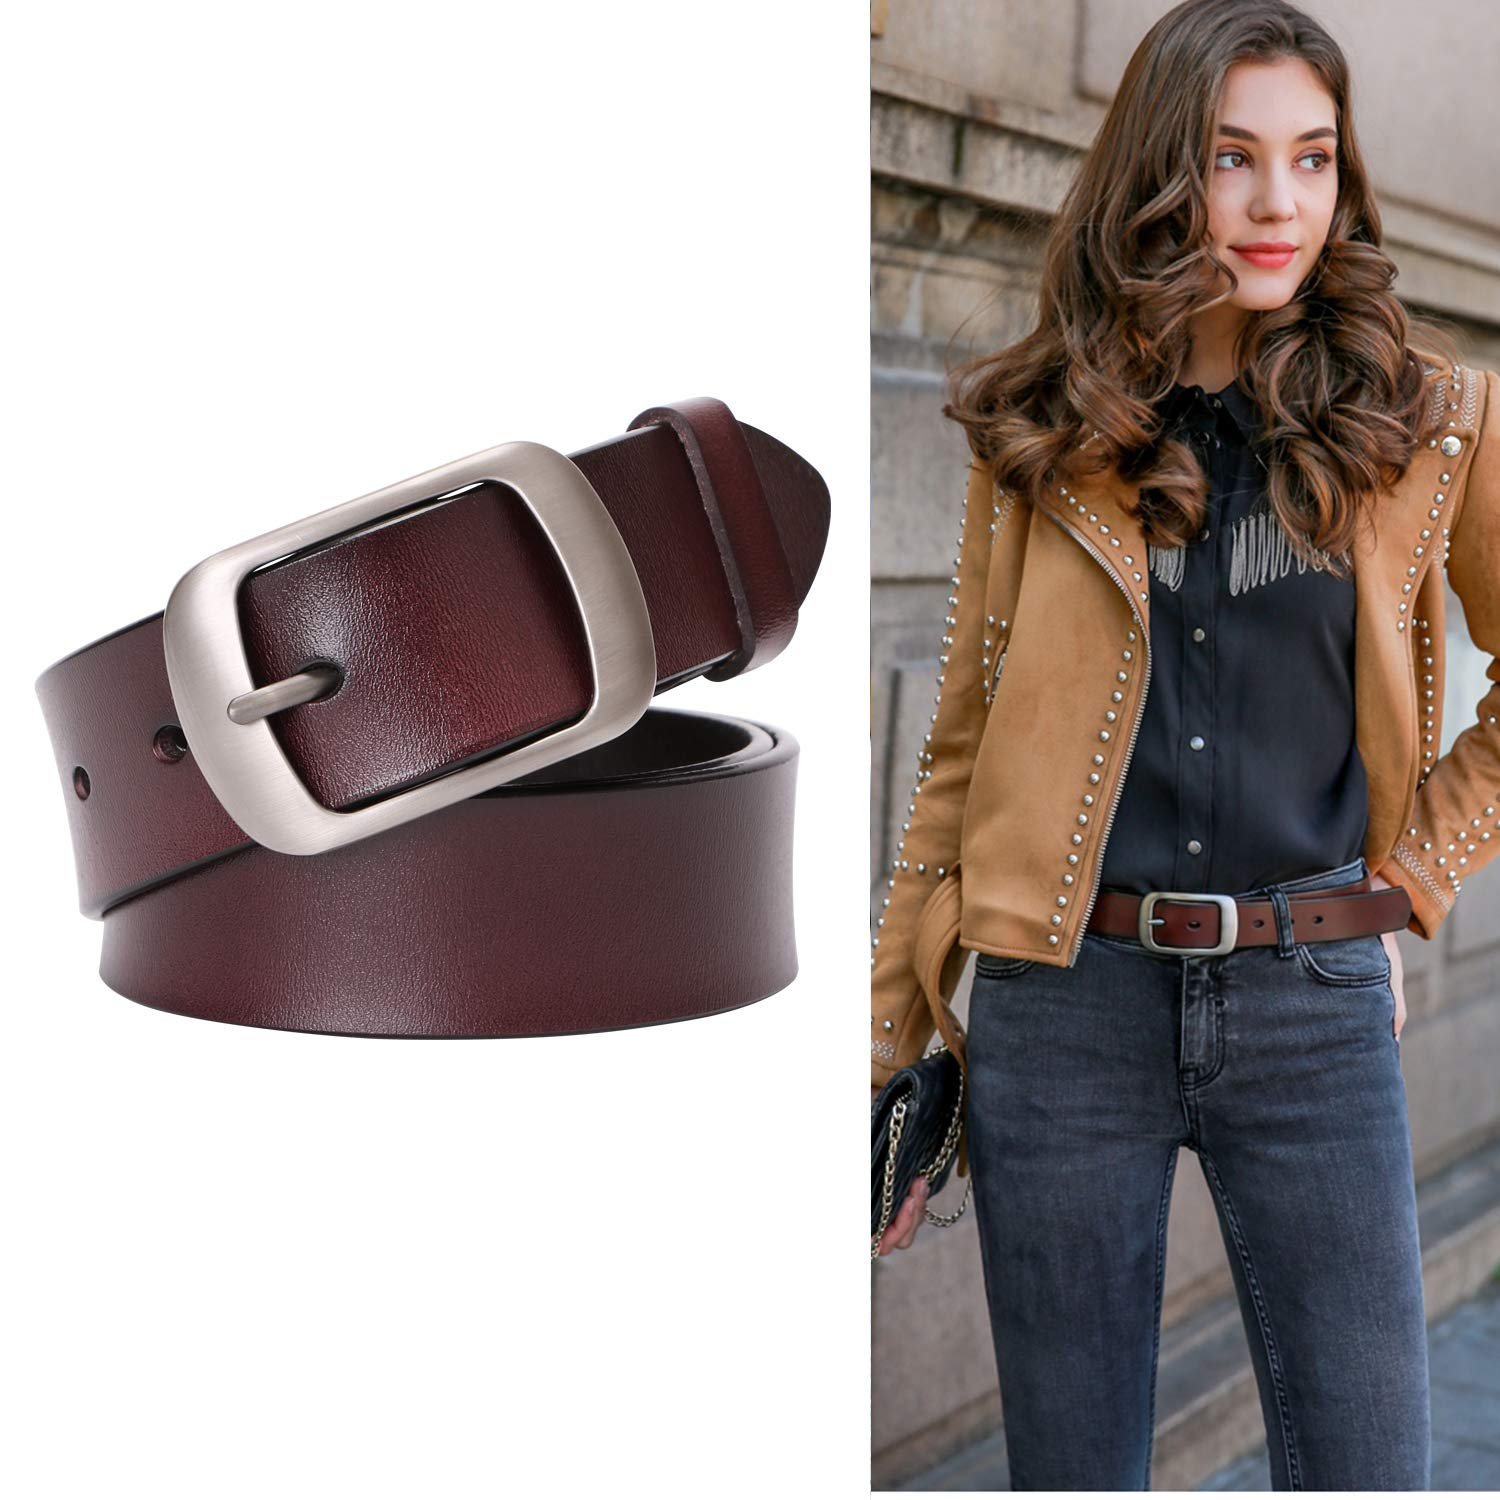 Genuine Leather Belts For Women Vintage Retro Jeans Belt With Pin Buckle Ladies Bull Leather Waist Belt For Jeans Pants Dresses